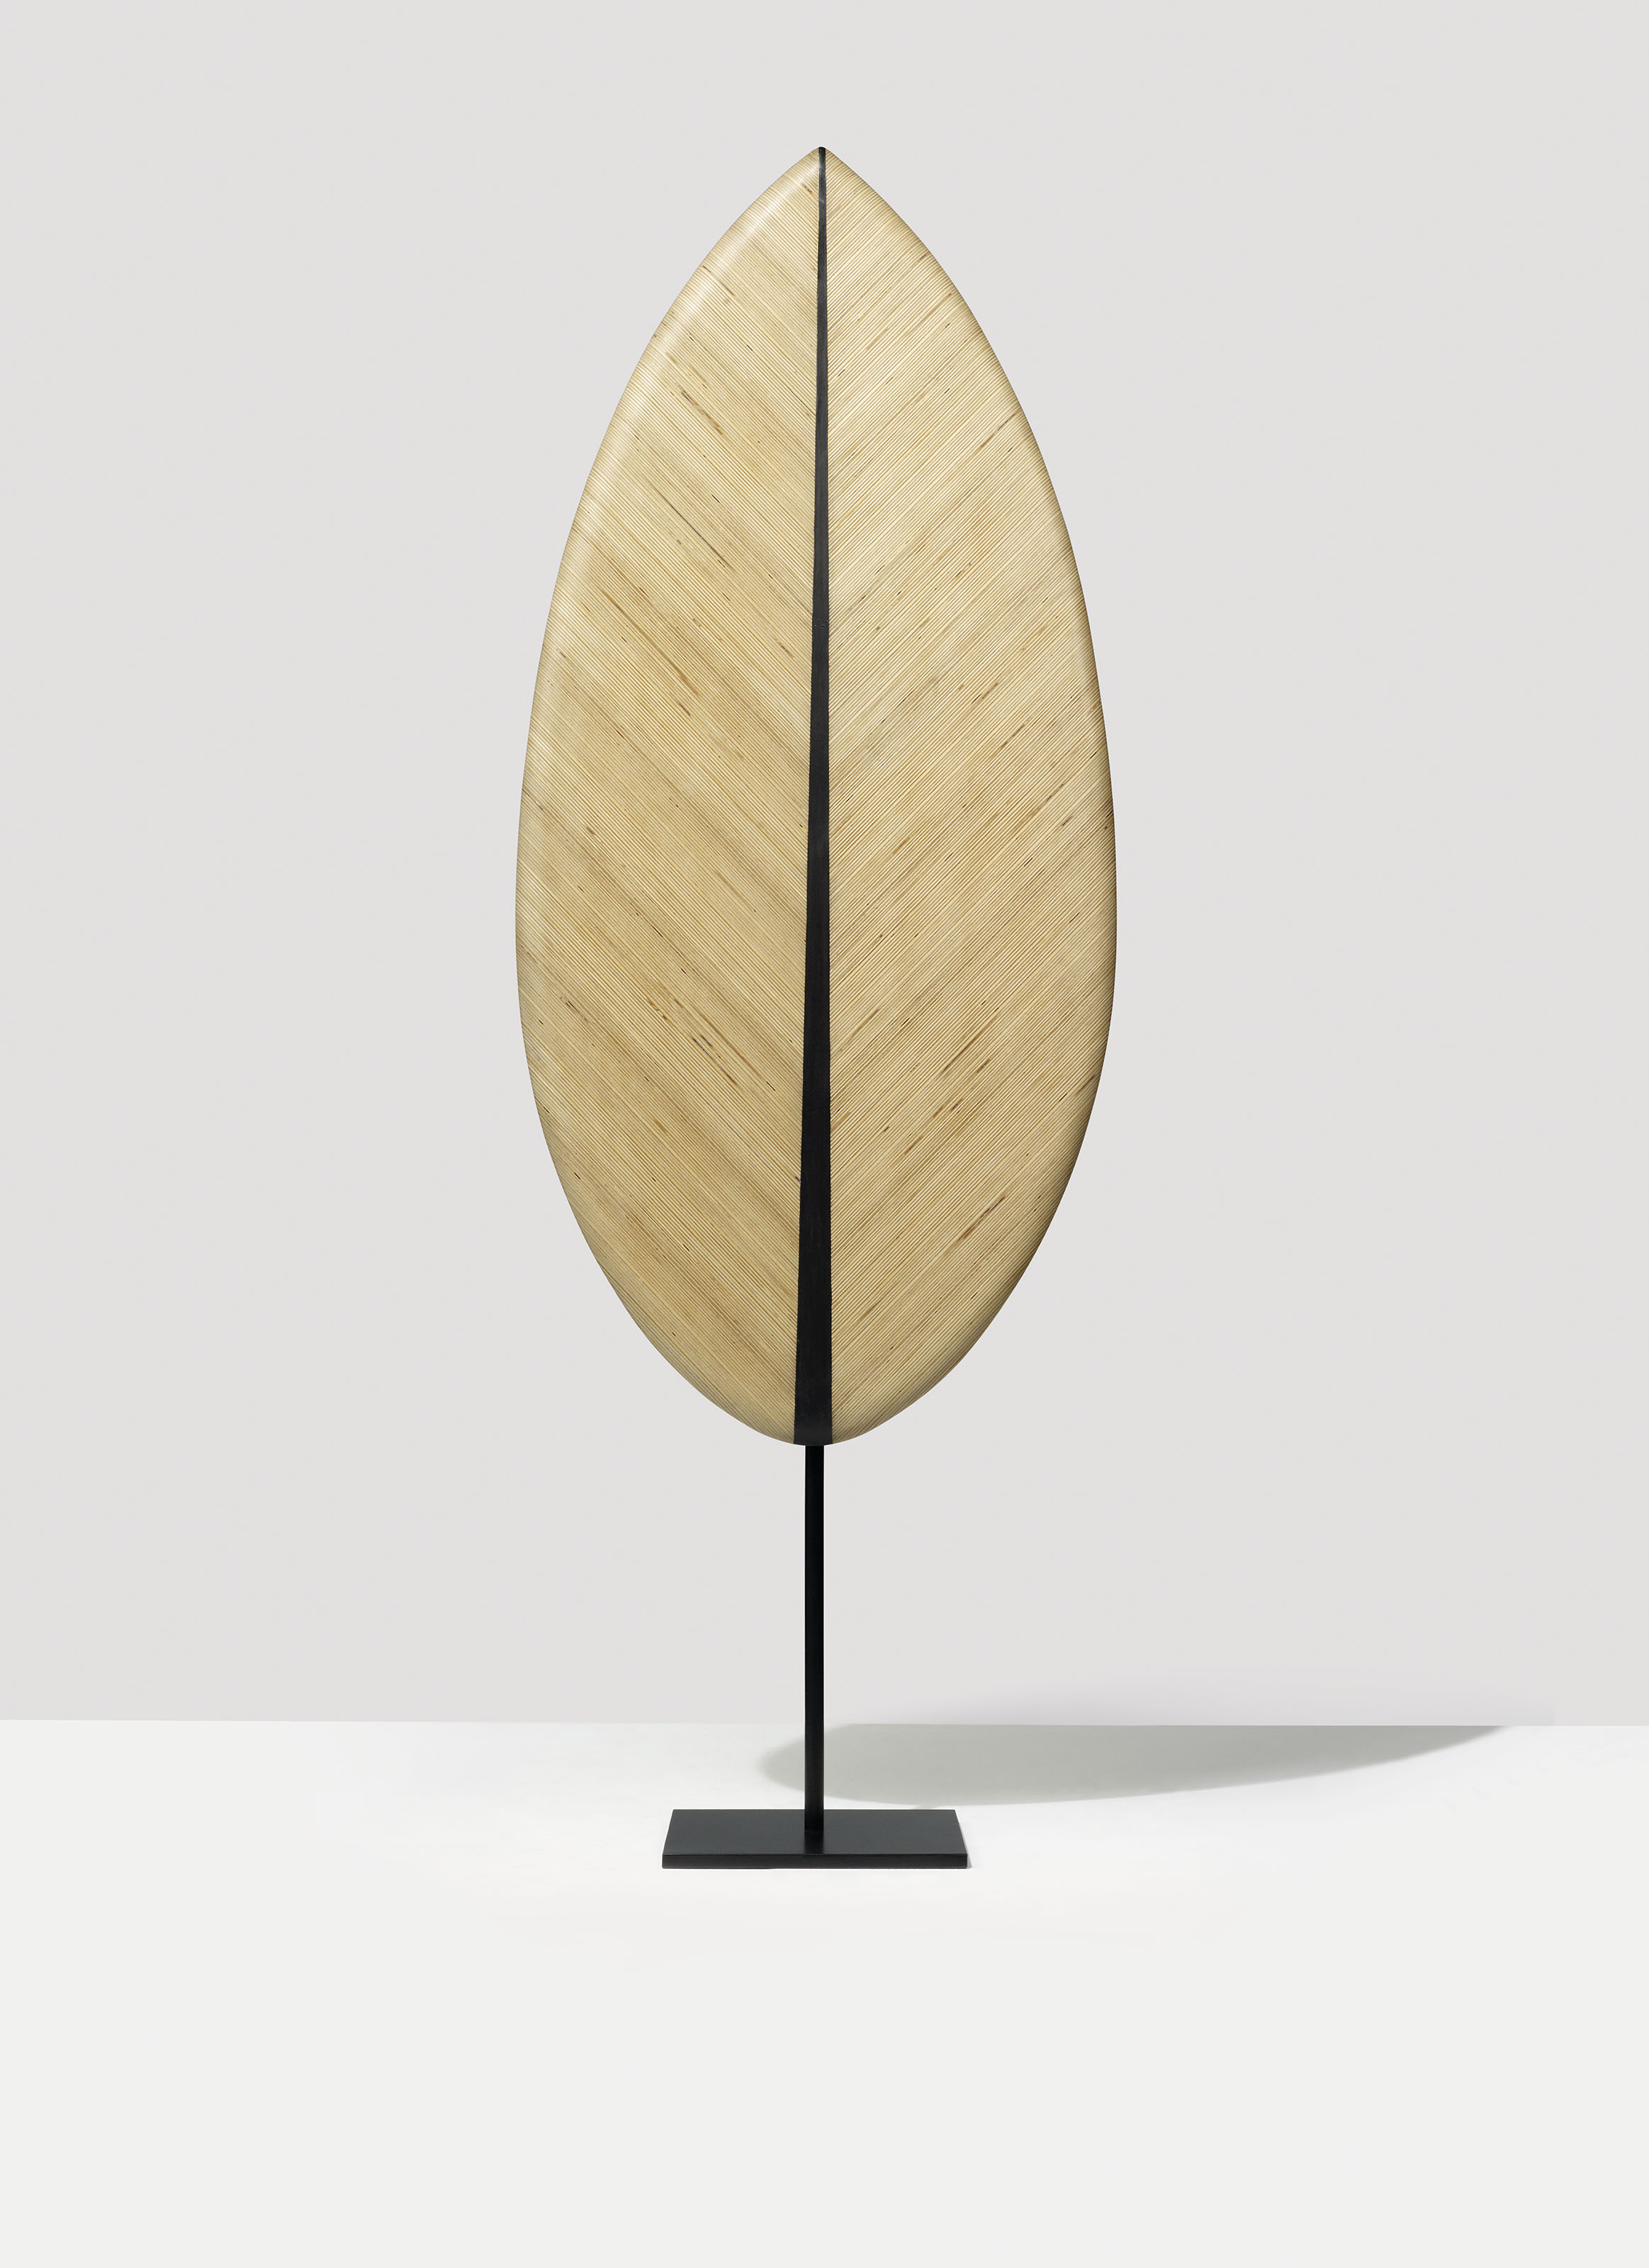 A Monumental Prototype 'Leaf'